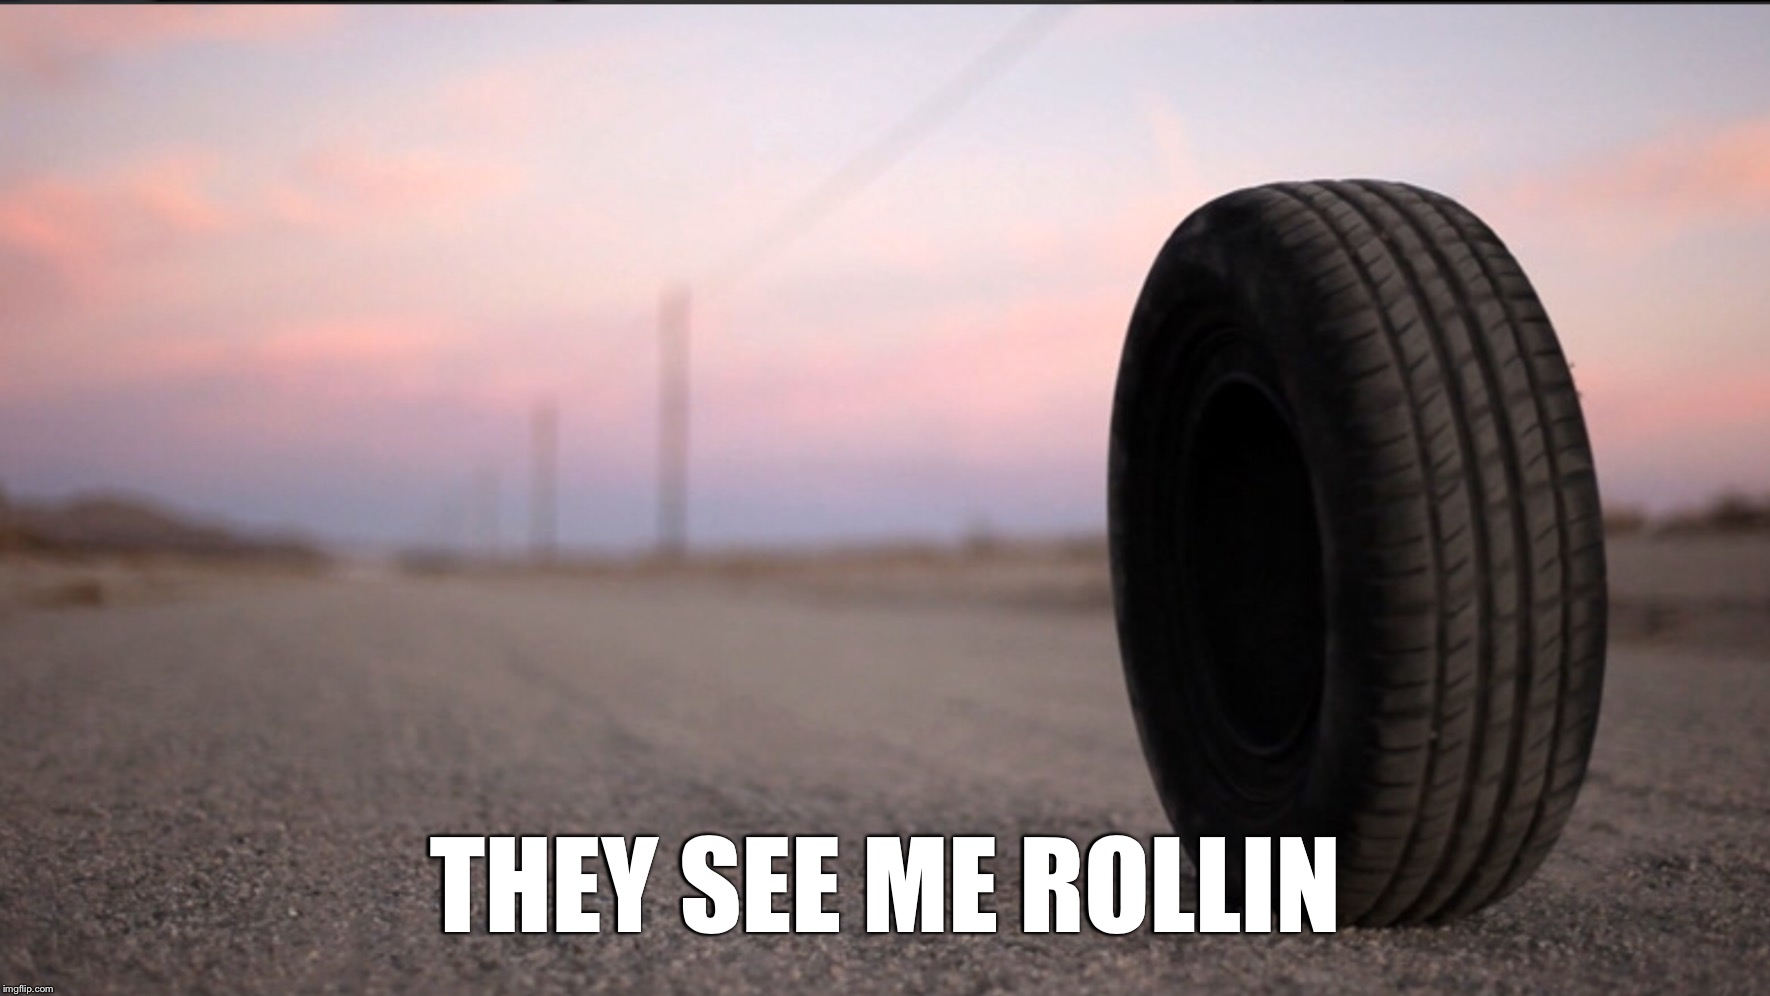 Rubber (2010) | THEY SEE ME ROLLIN | image tagged in memes,rubber,2010,movie | made w/ Imgflip meme maker